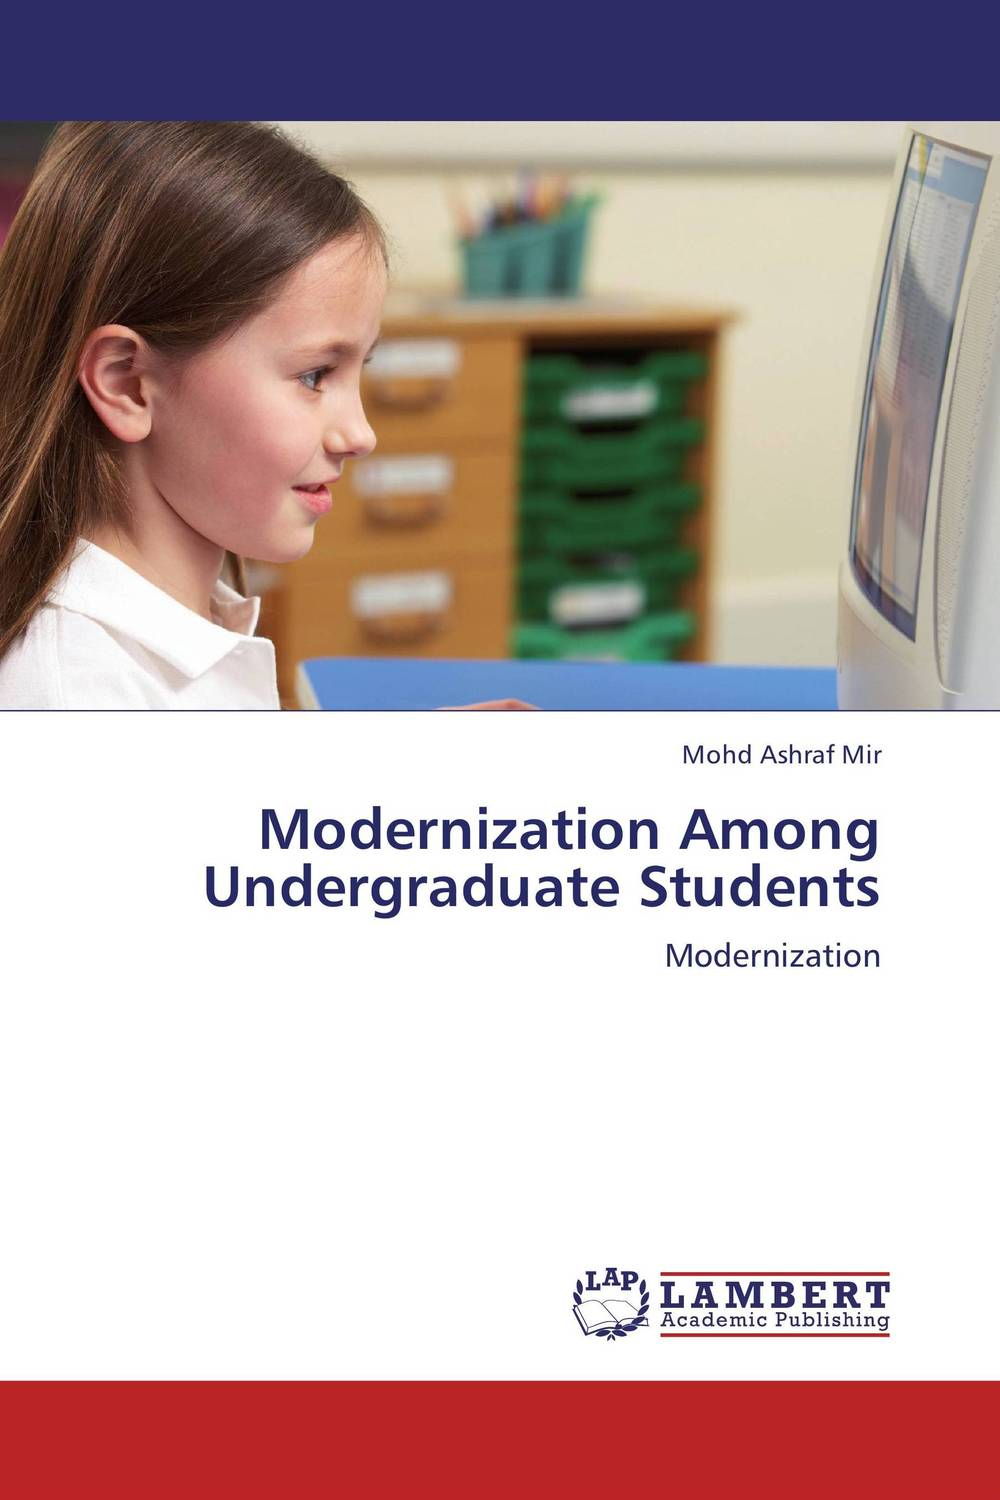 Modernization Among Undergraduate Students